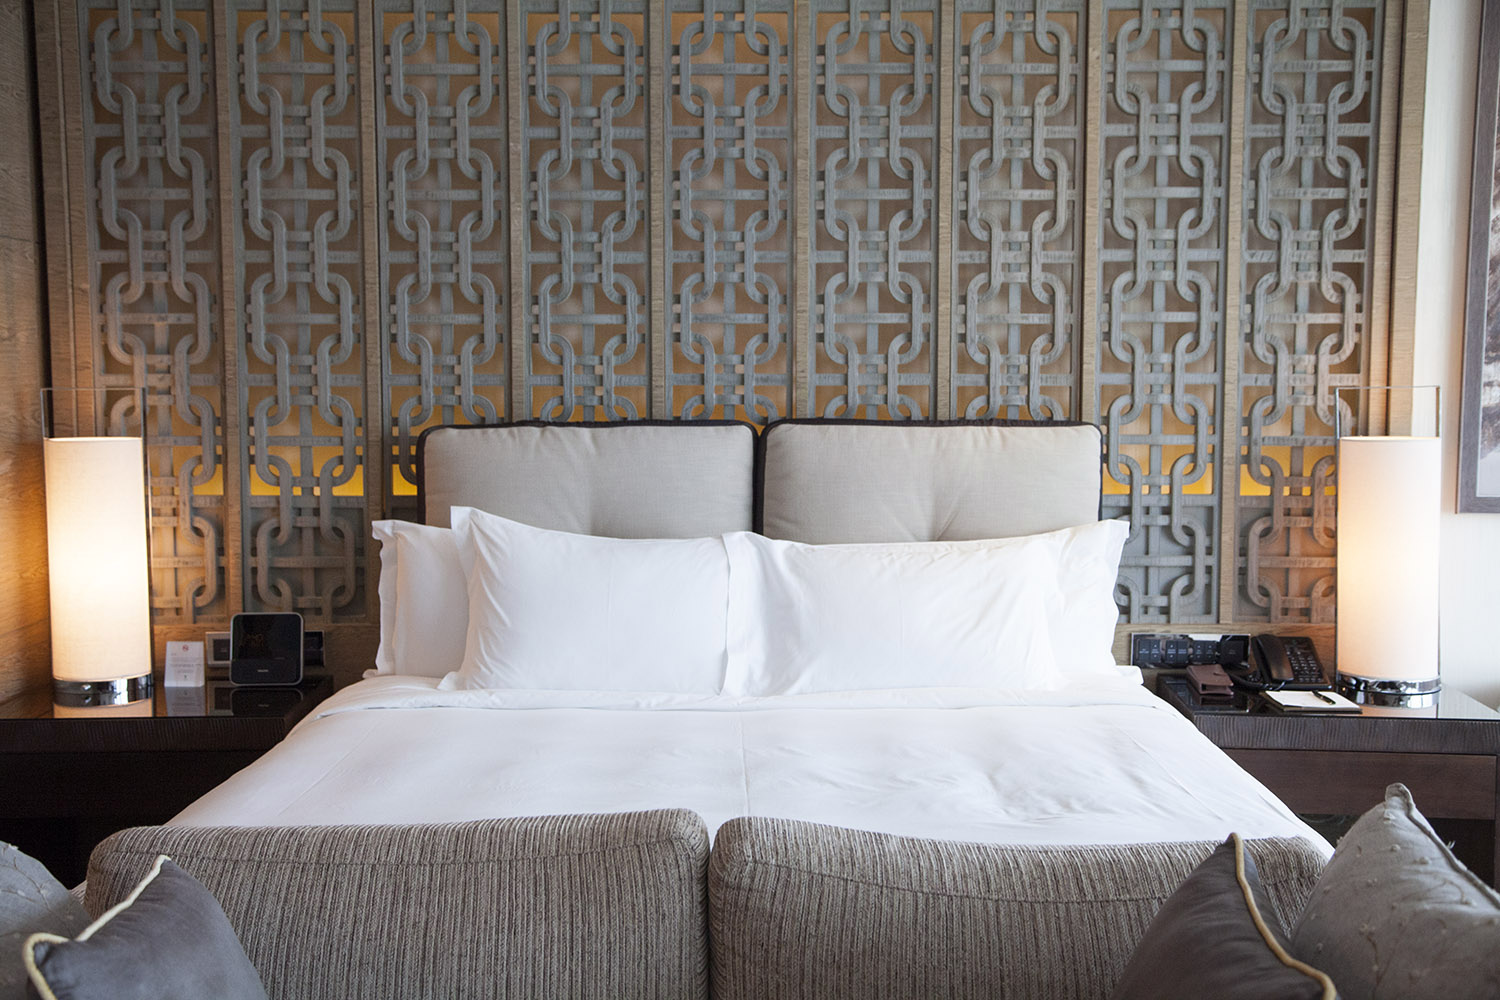 Banyan Tree Shanghai on the Bund - Hotel Room with a Pool and a View   Of Leather and Lace - Fashion & Travel Blog by Tina Lee   hotel review, shanghai city